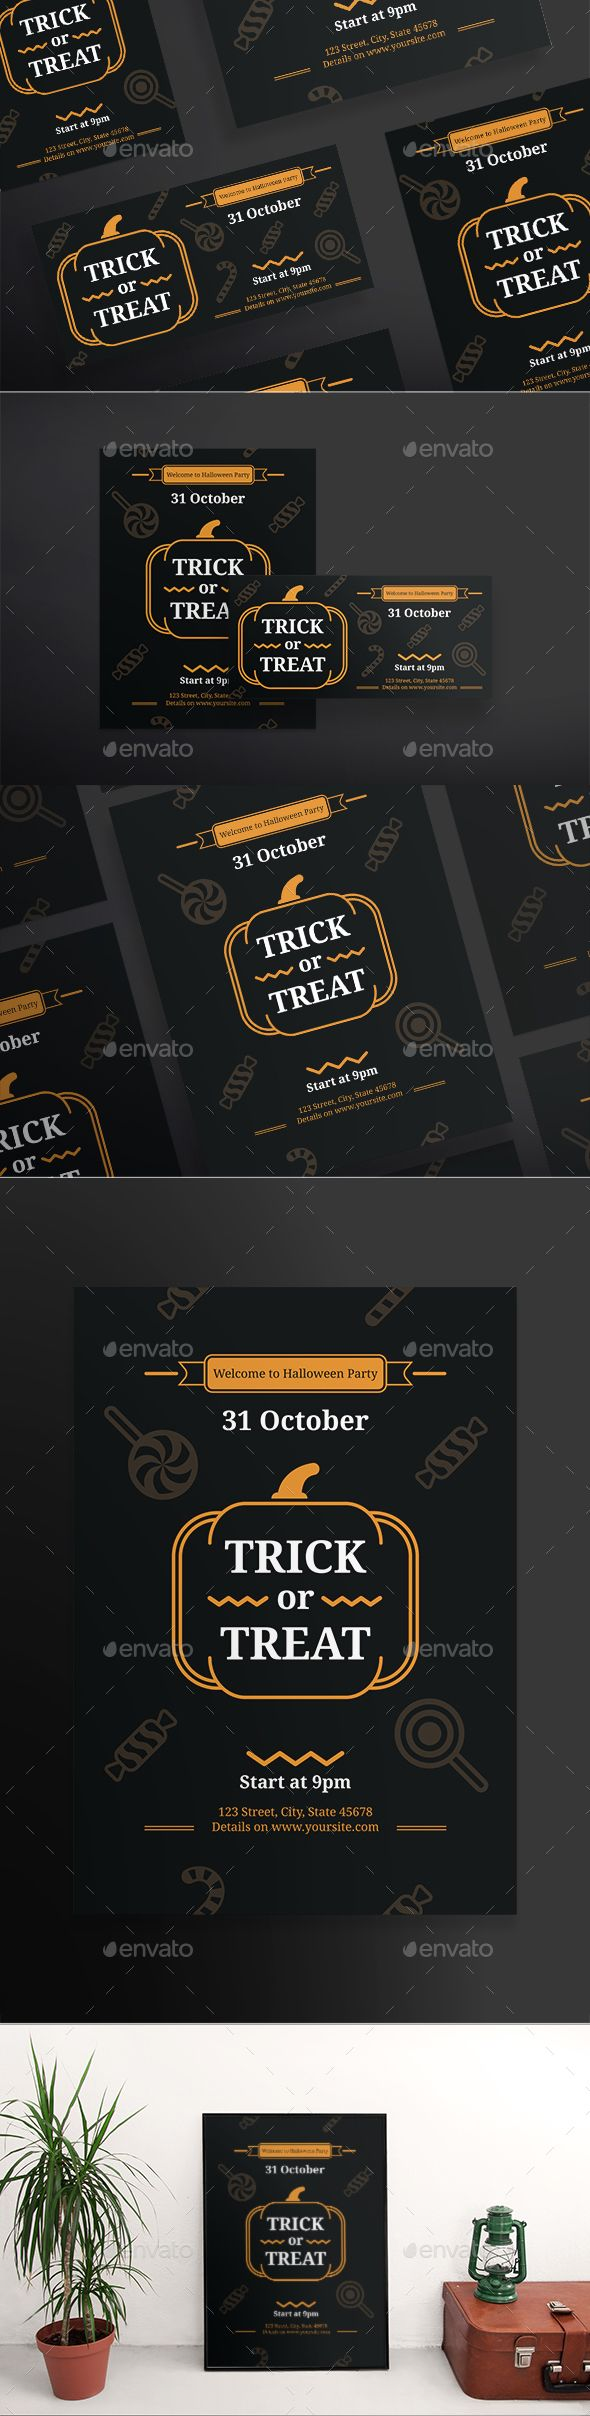 Trick Or Treat Flyers